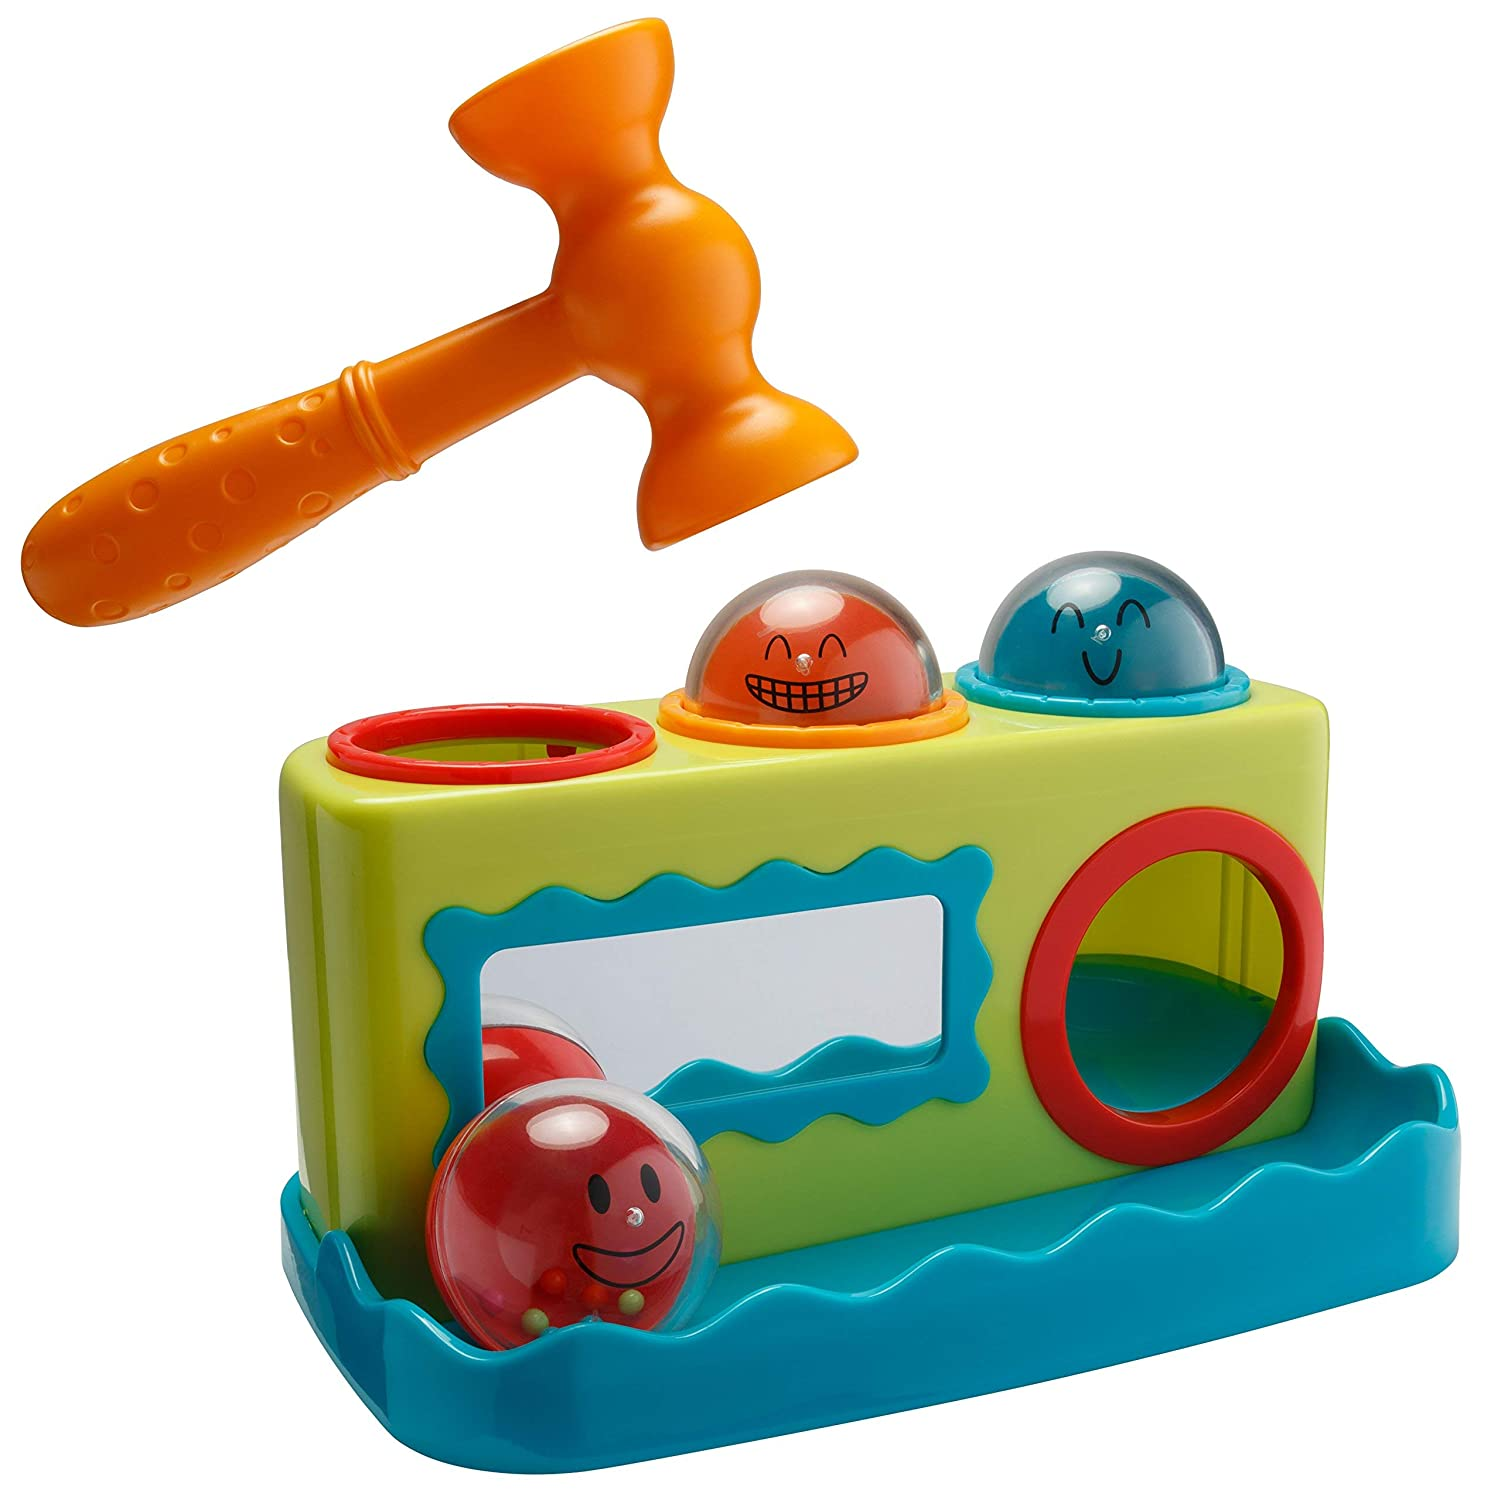 Playkidz Super Durable Roll Toy Hammer Balls Plan Toy Punch for Kids